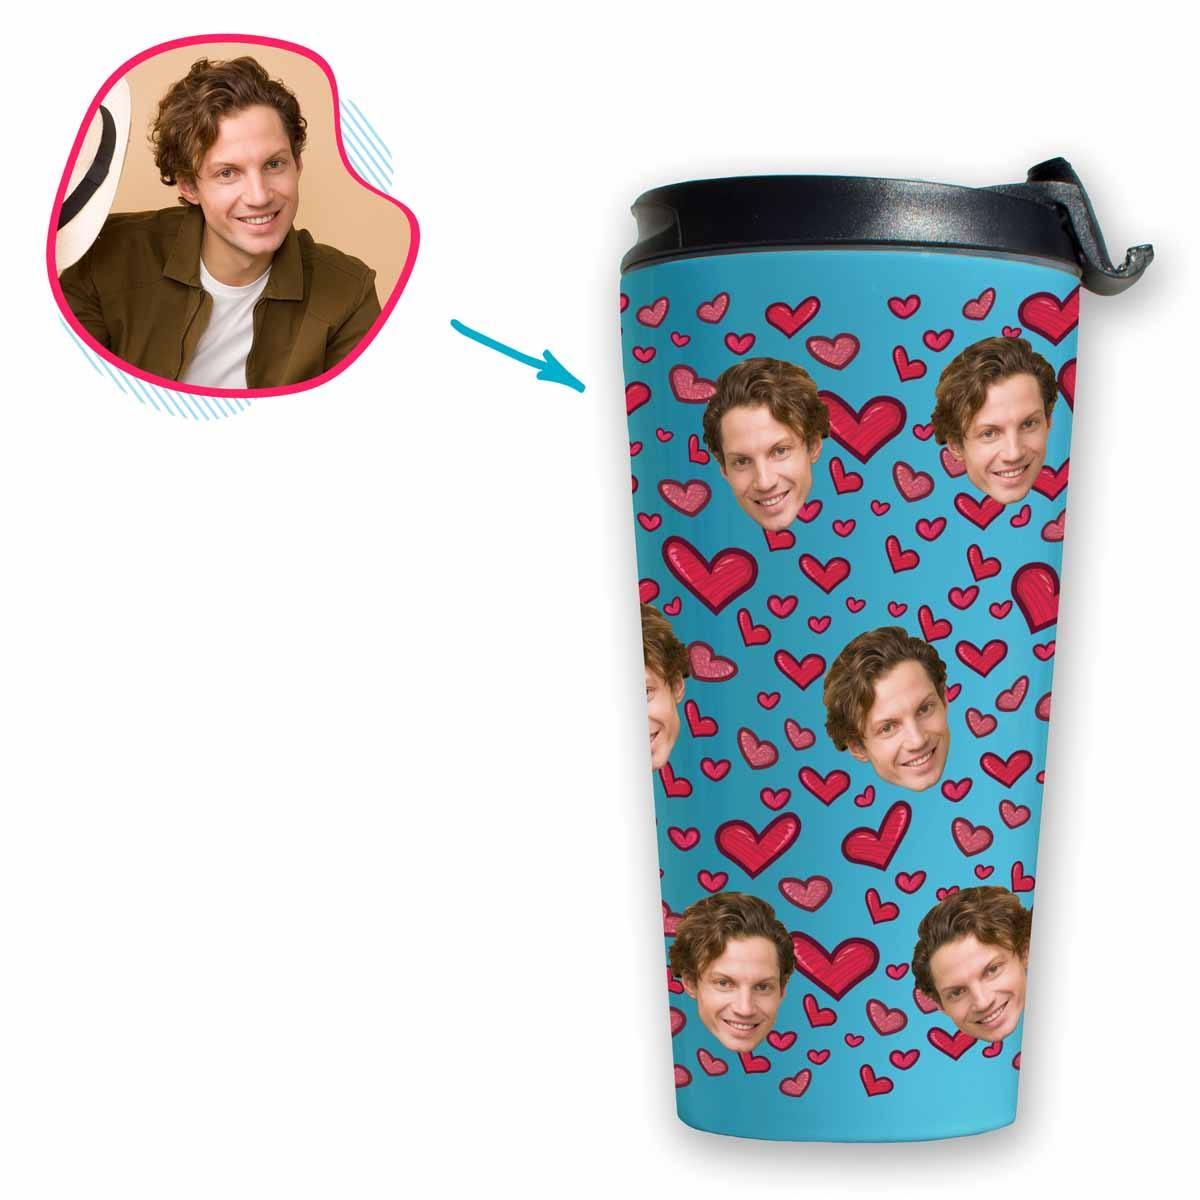 blue Heart travel mug personalized with photo of face printed on it